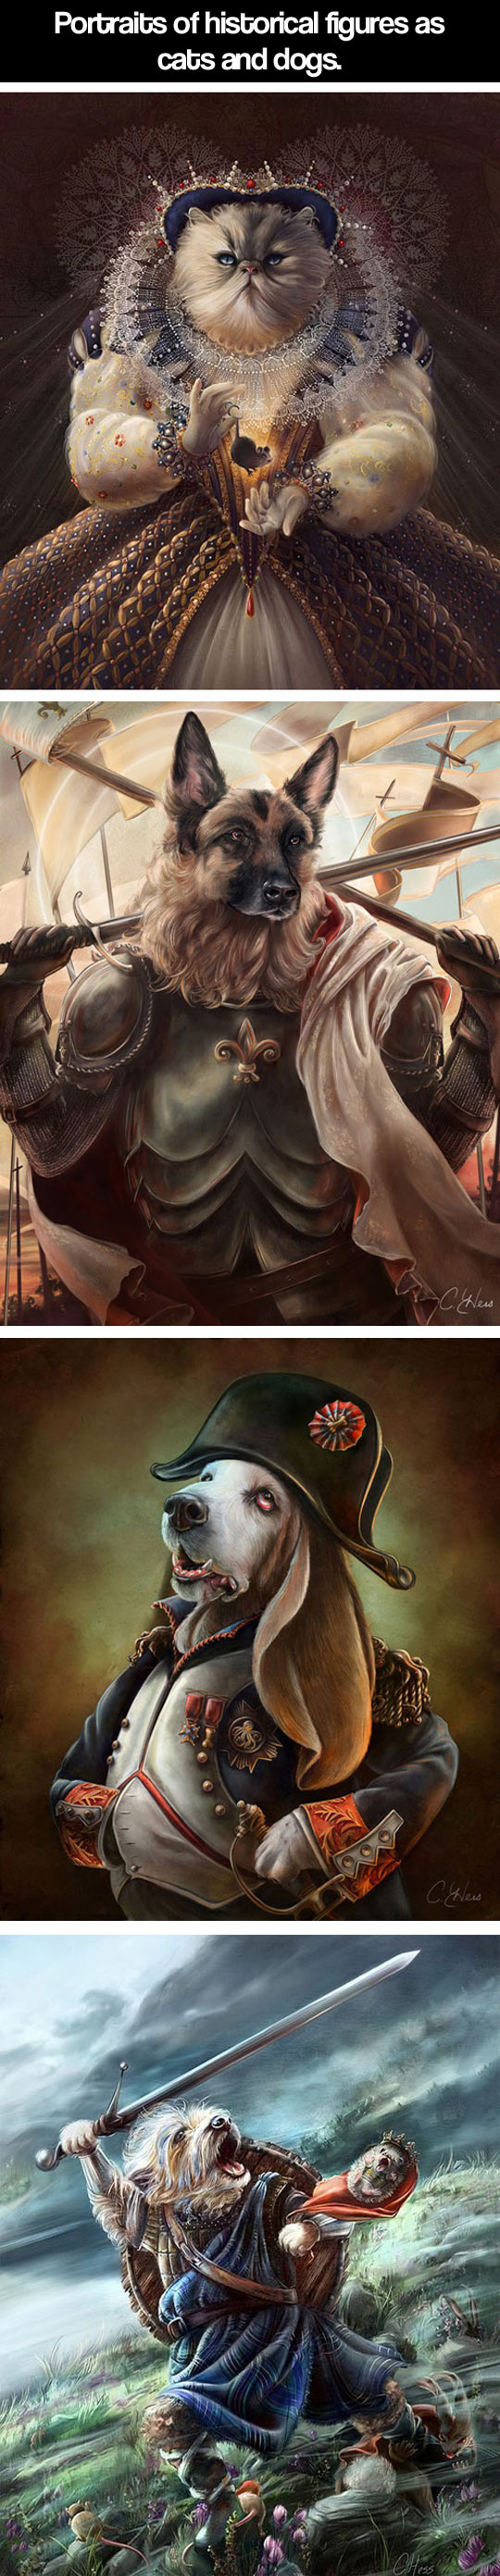 Historical figures as cats and dogs...